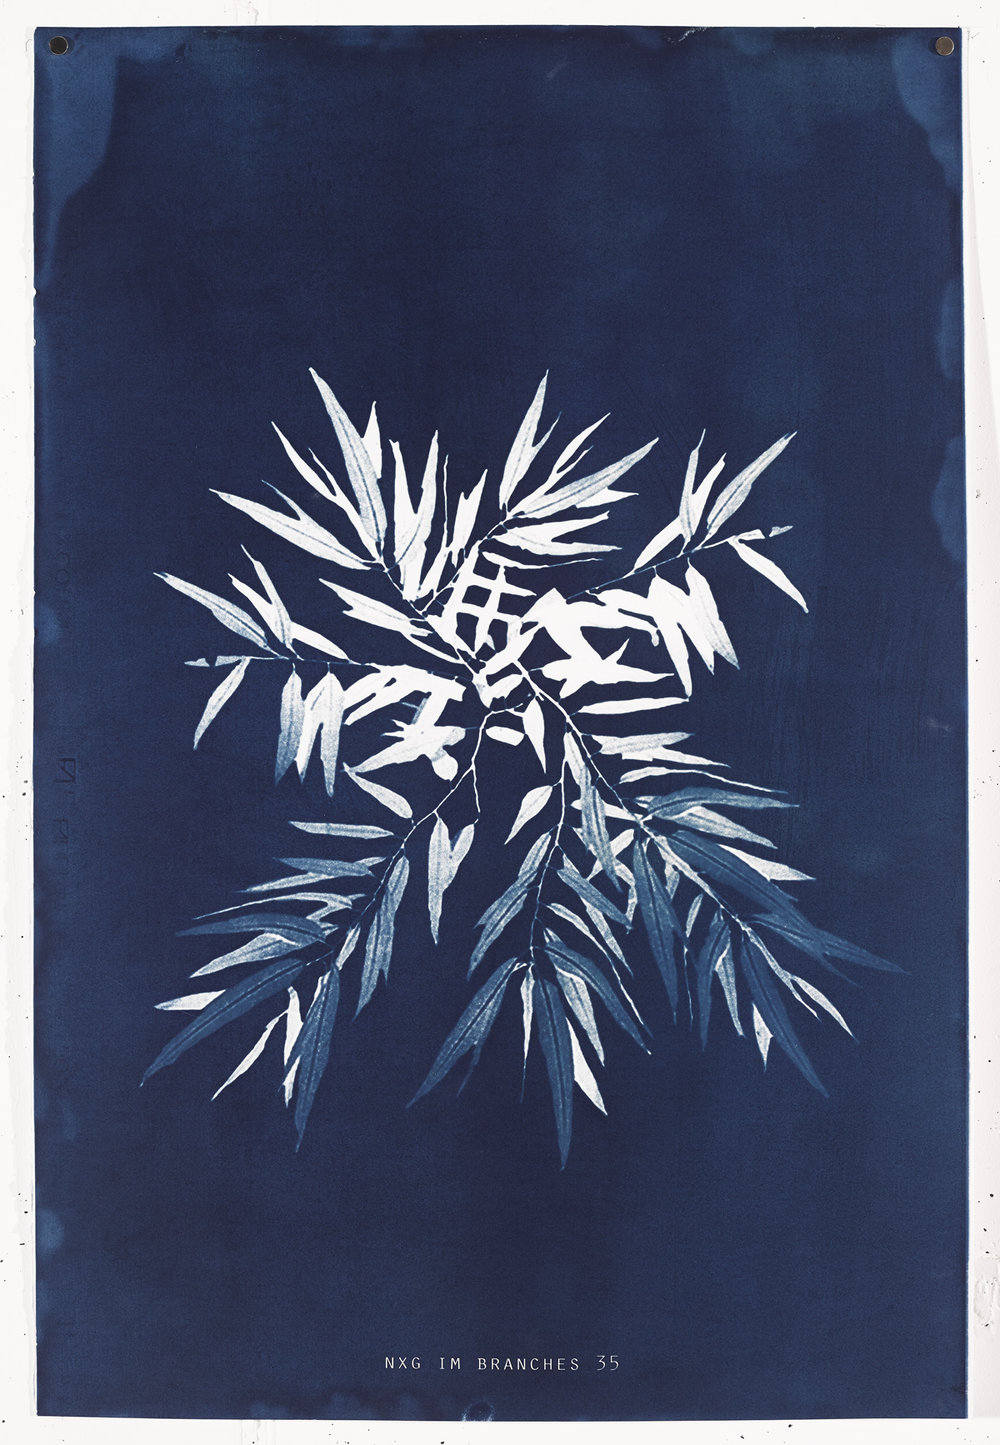 IM BRANCHES 2017 Unique cyanotype print on Frabriano No.5.  90.4cm x 61cm